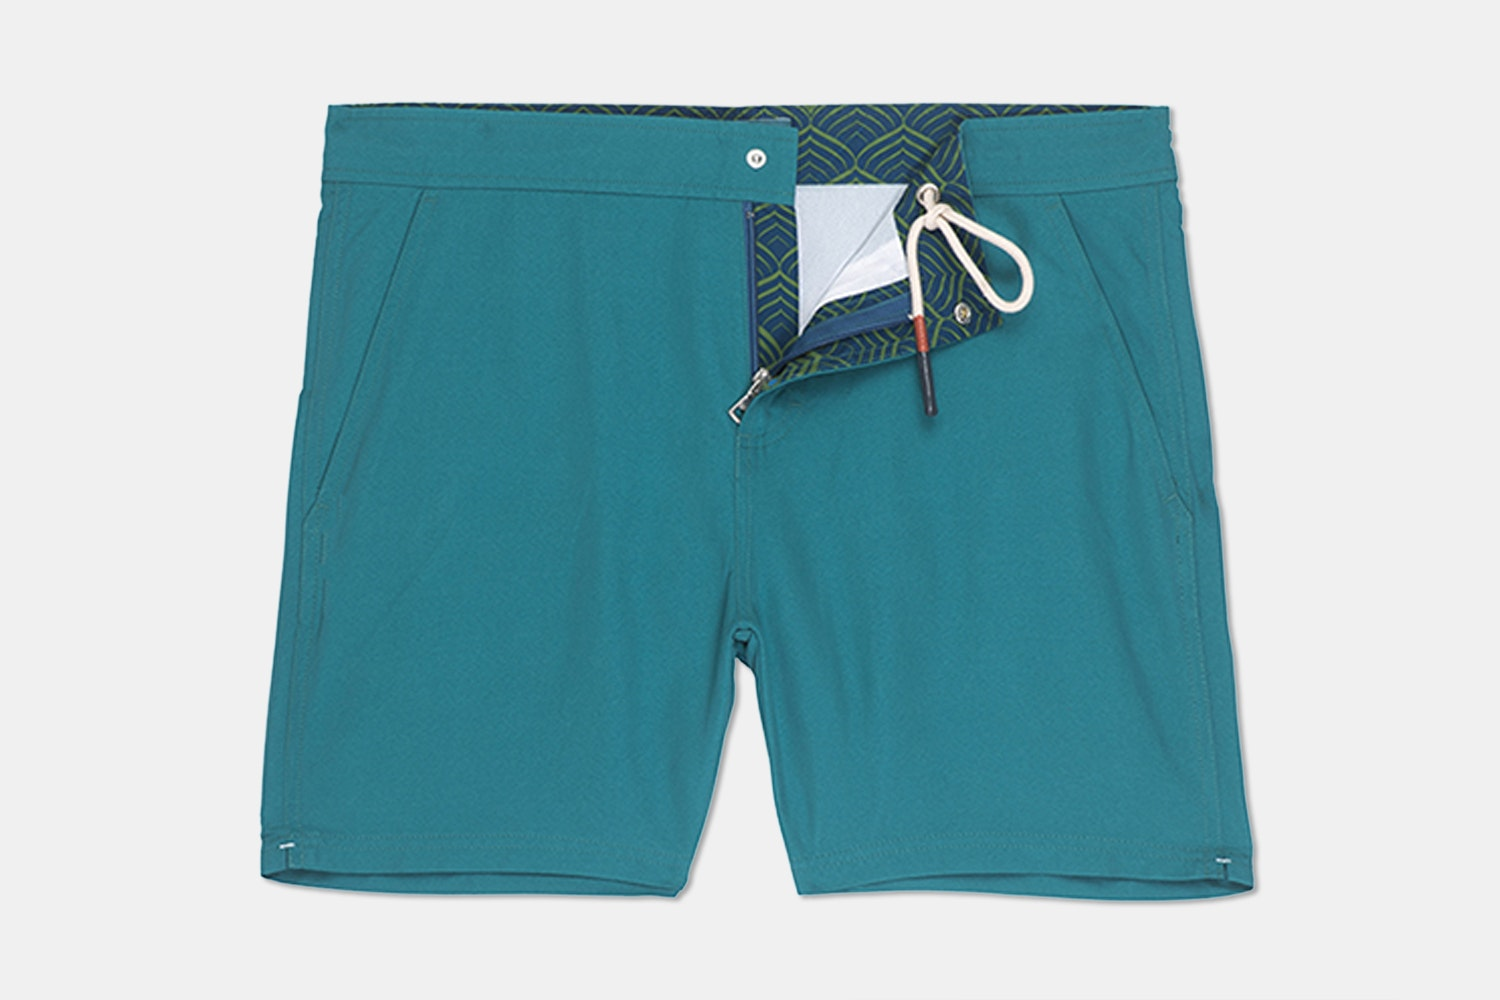 Hampton Swim Trunk – Solid Teal